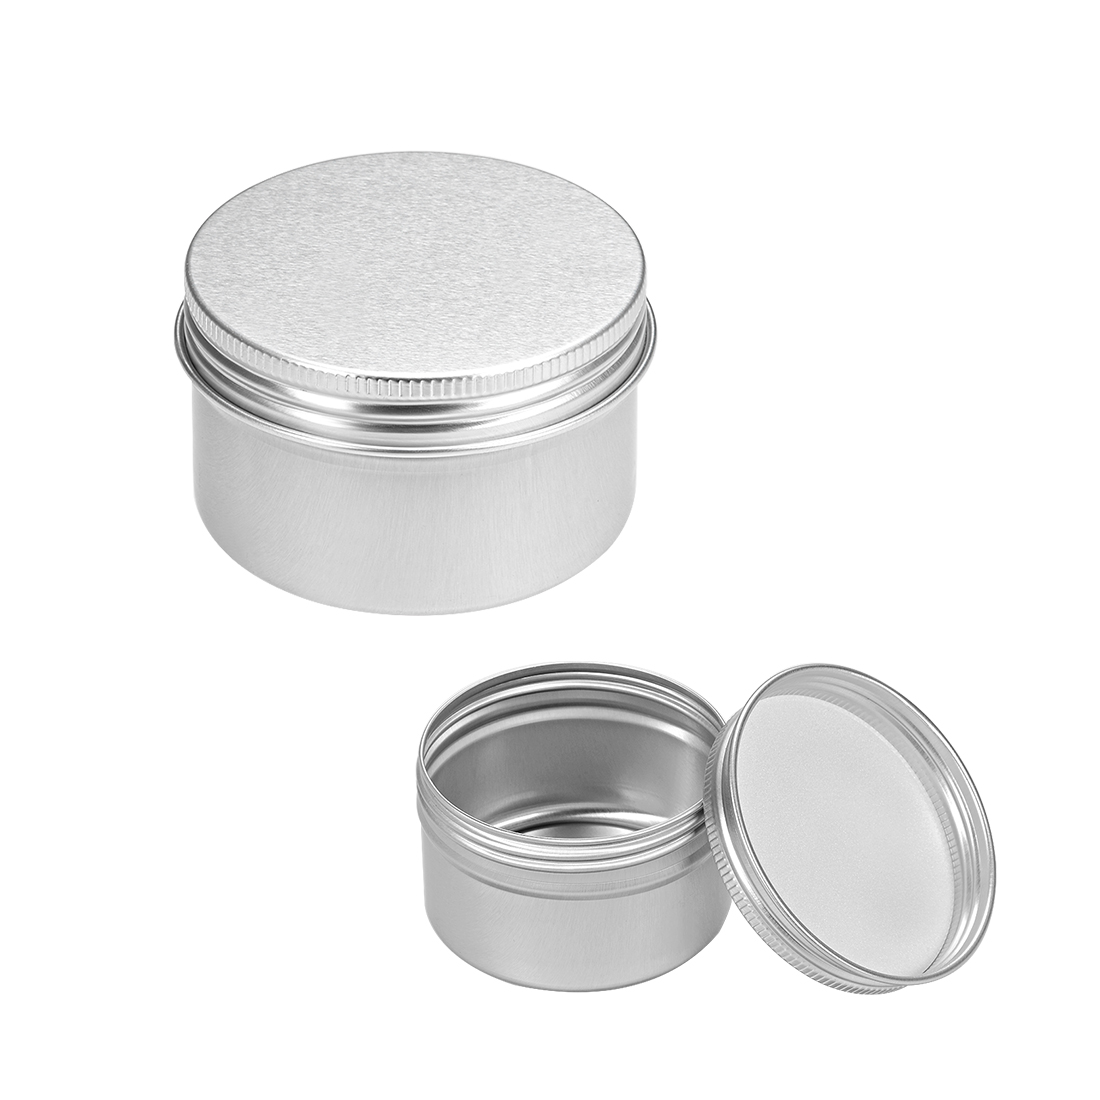 2.7 oz Round Aluminum Cans Tin Can Screw Top Metal Lid Containers 80ml 12pcs